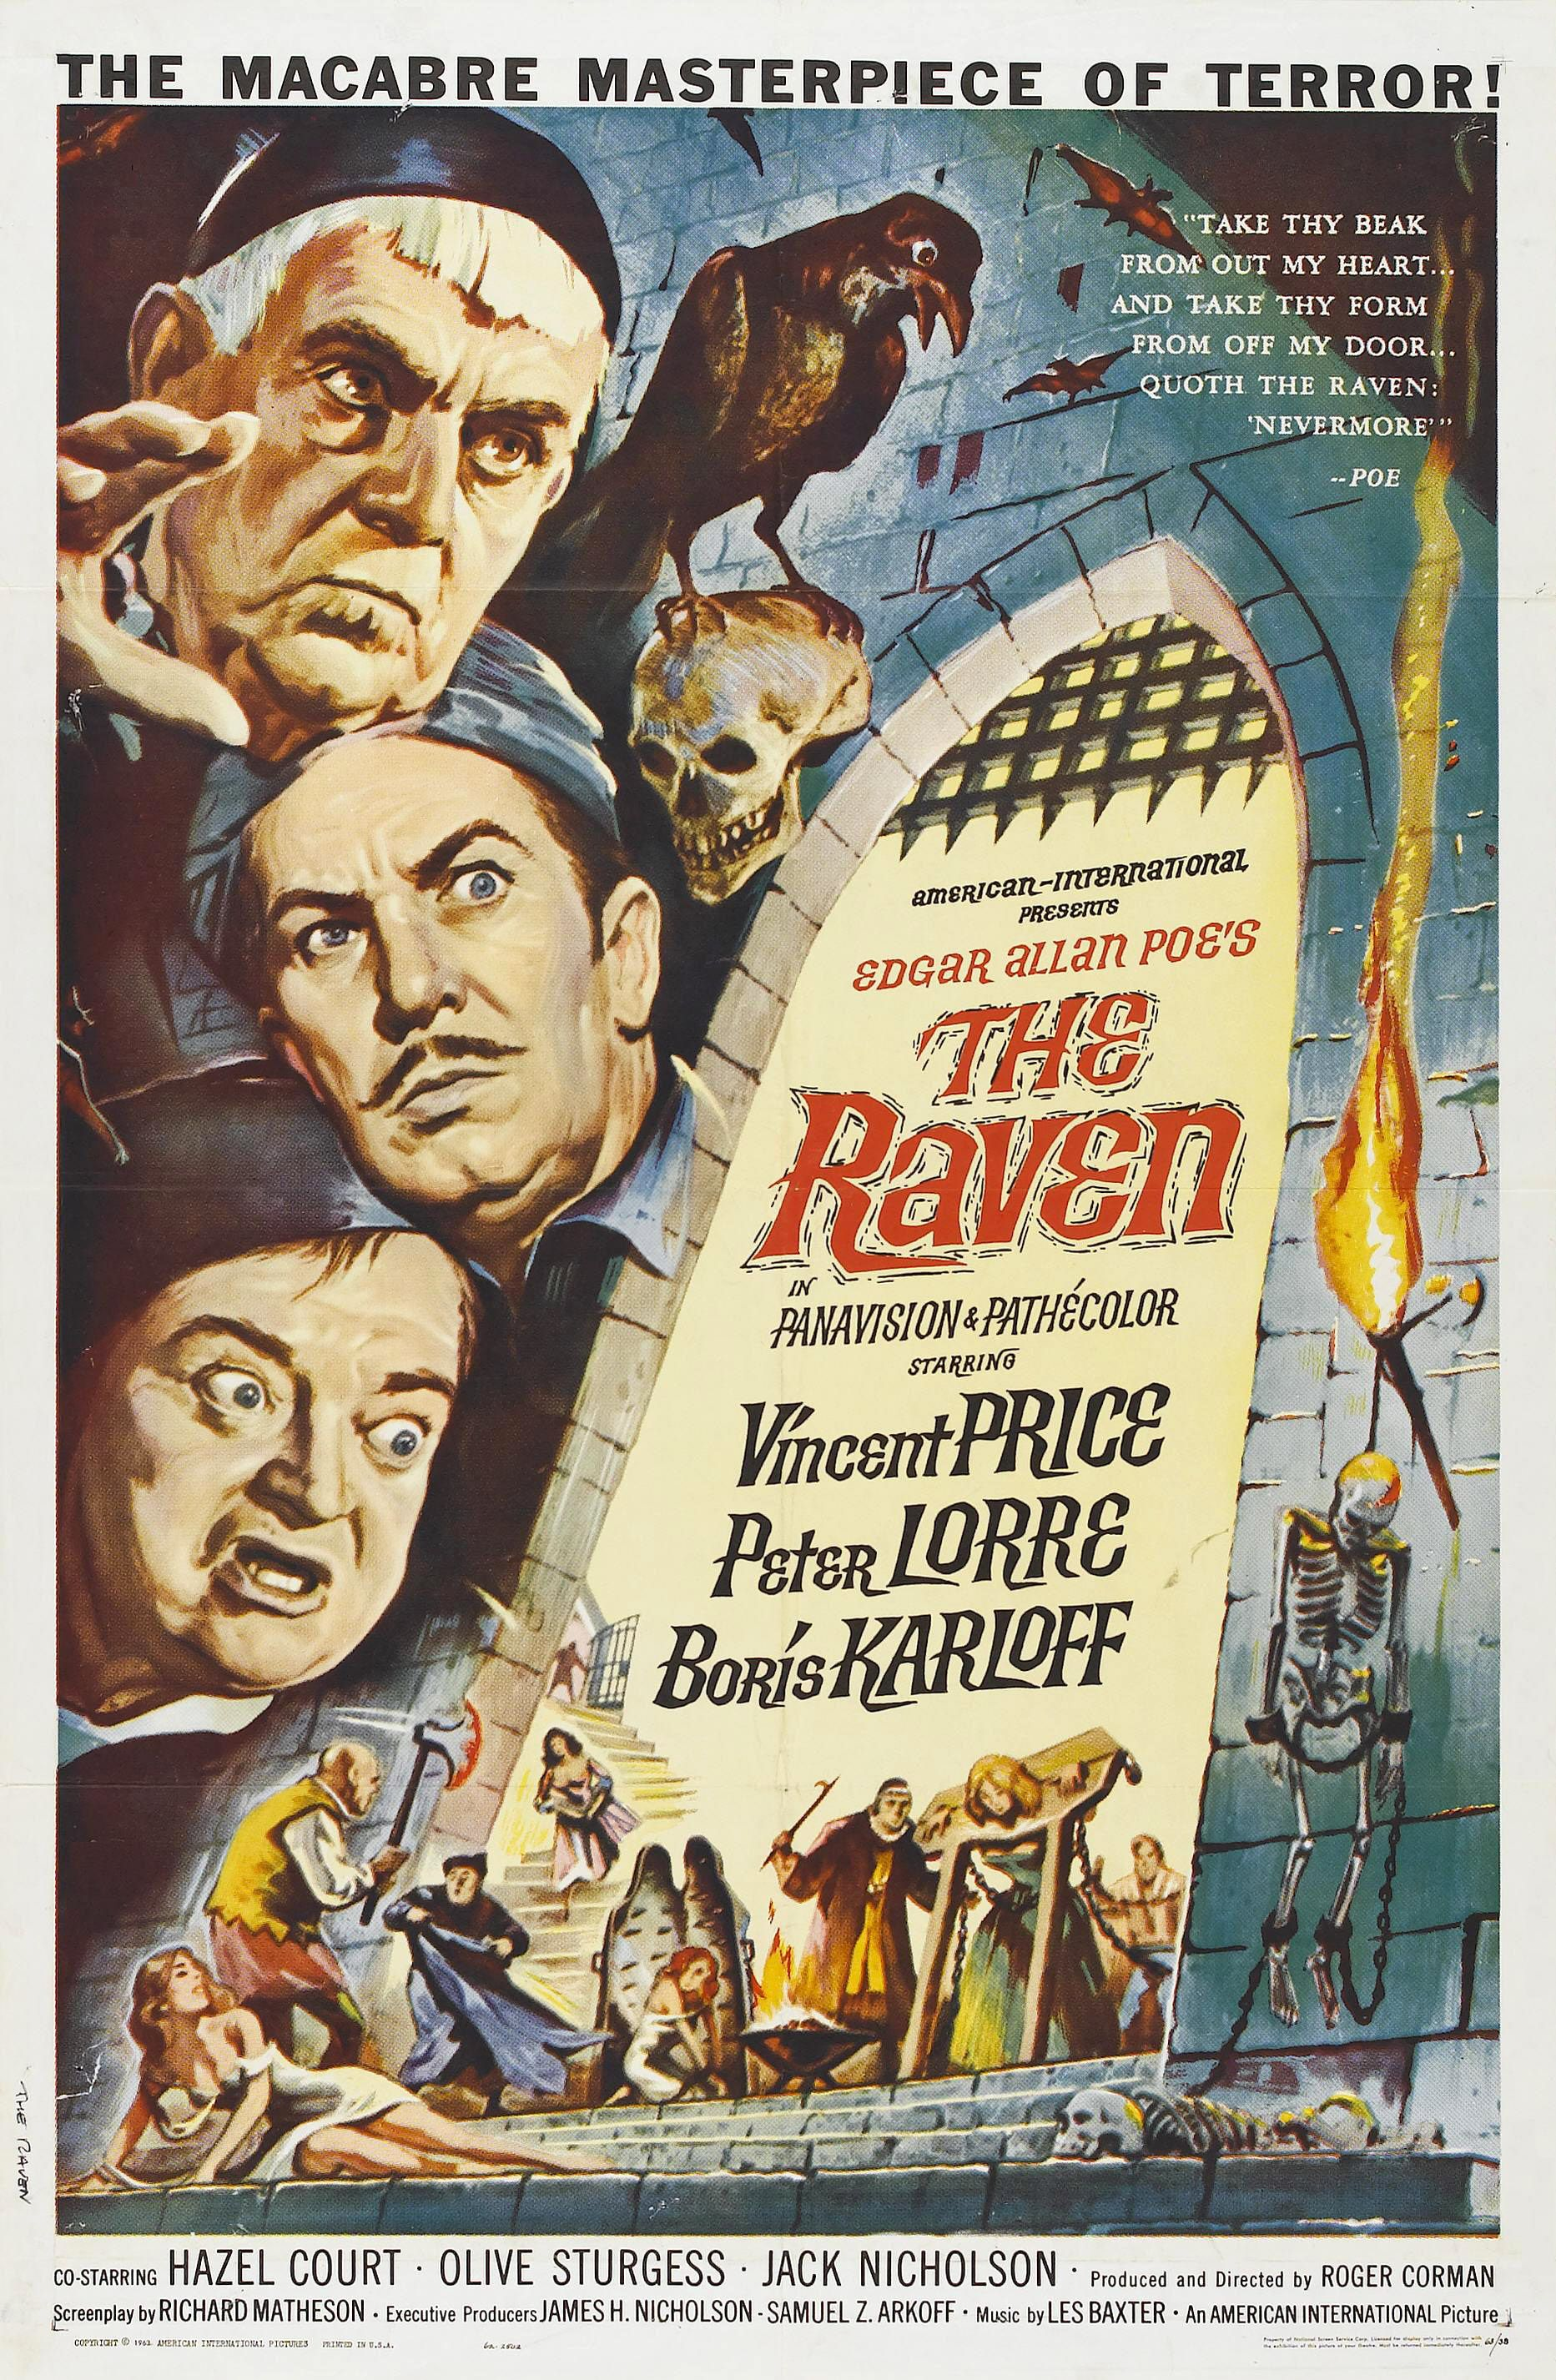 the raven imdb com title tt deranged the raven is a b movie horror comedy directed by roger corman the film stars vincent price peter lorre and boris karloff as a trio of rival sorcerers